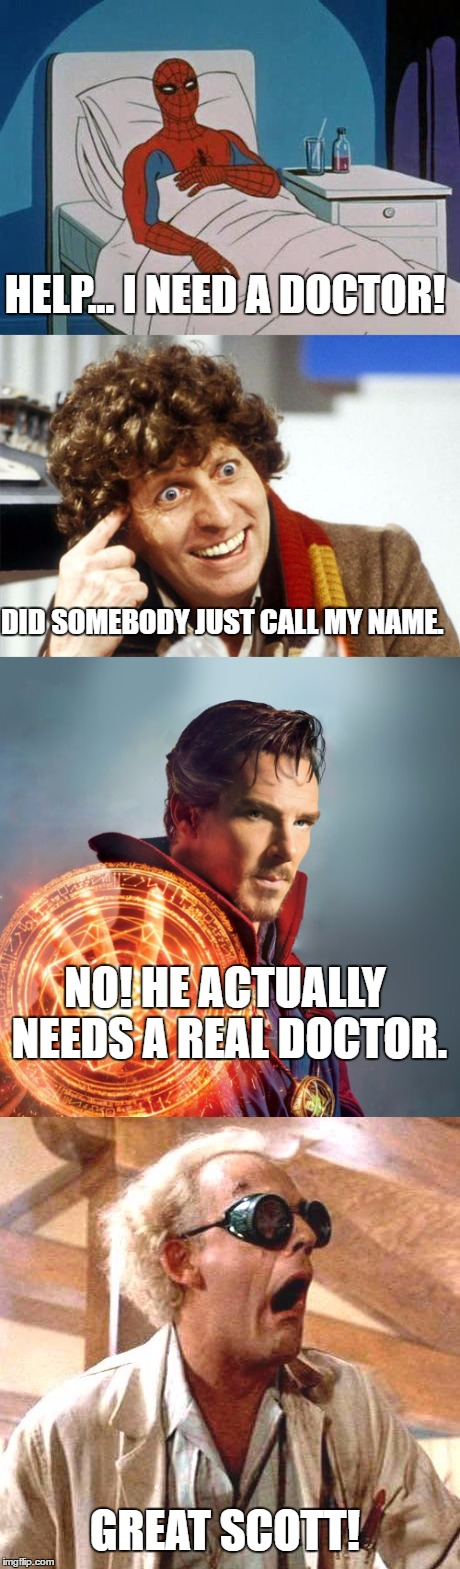 Spiderman Hospital | HELP... I NEED A DOCTOR! GREAT SCOTT! DID SOMEBODY JUST CALL MY NAME. NO! HE ACTUALLY NEEDS A REAL DOCTOR. | image tagged in memes,spiderman,doctor who,doctor strange,back to the future | made w/ Imgflip meme maker